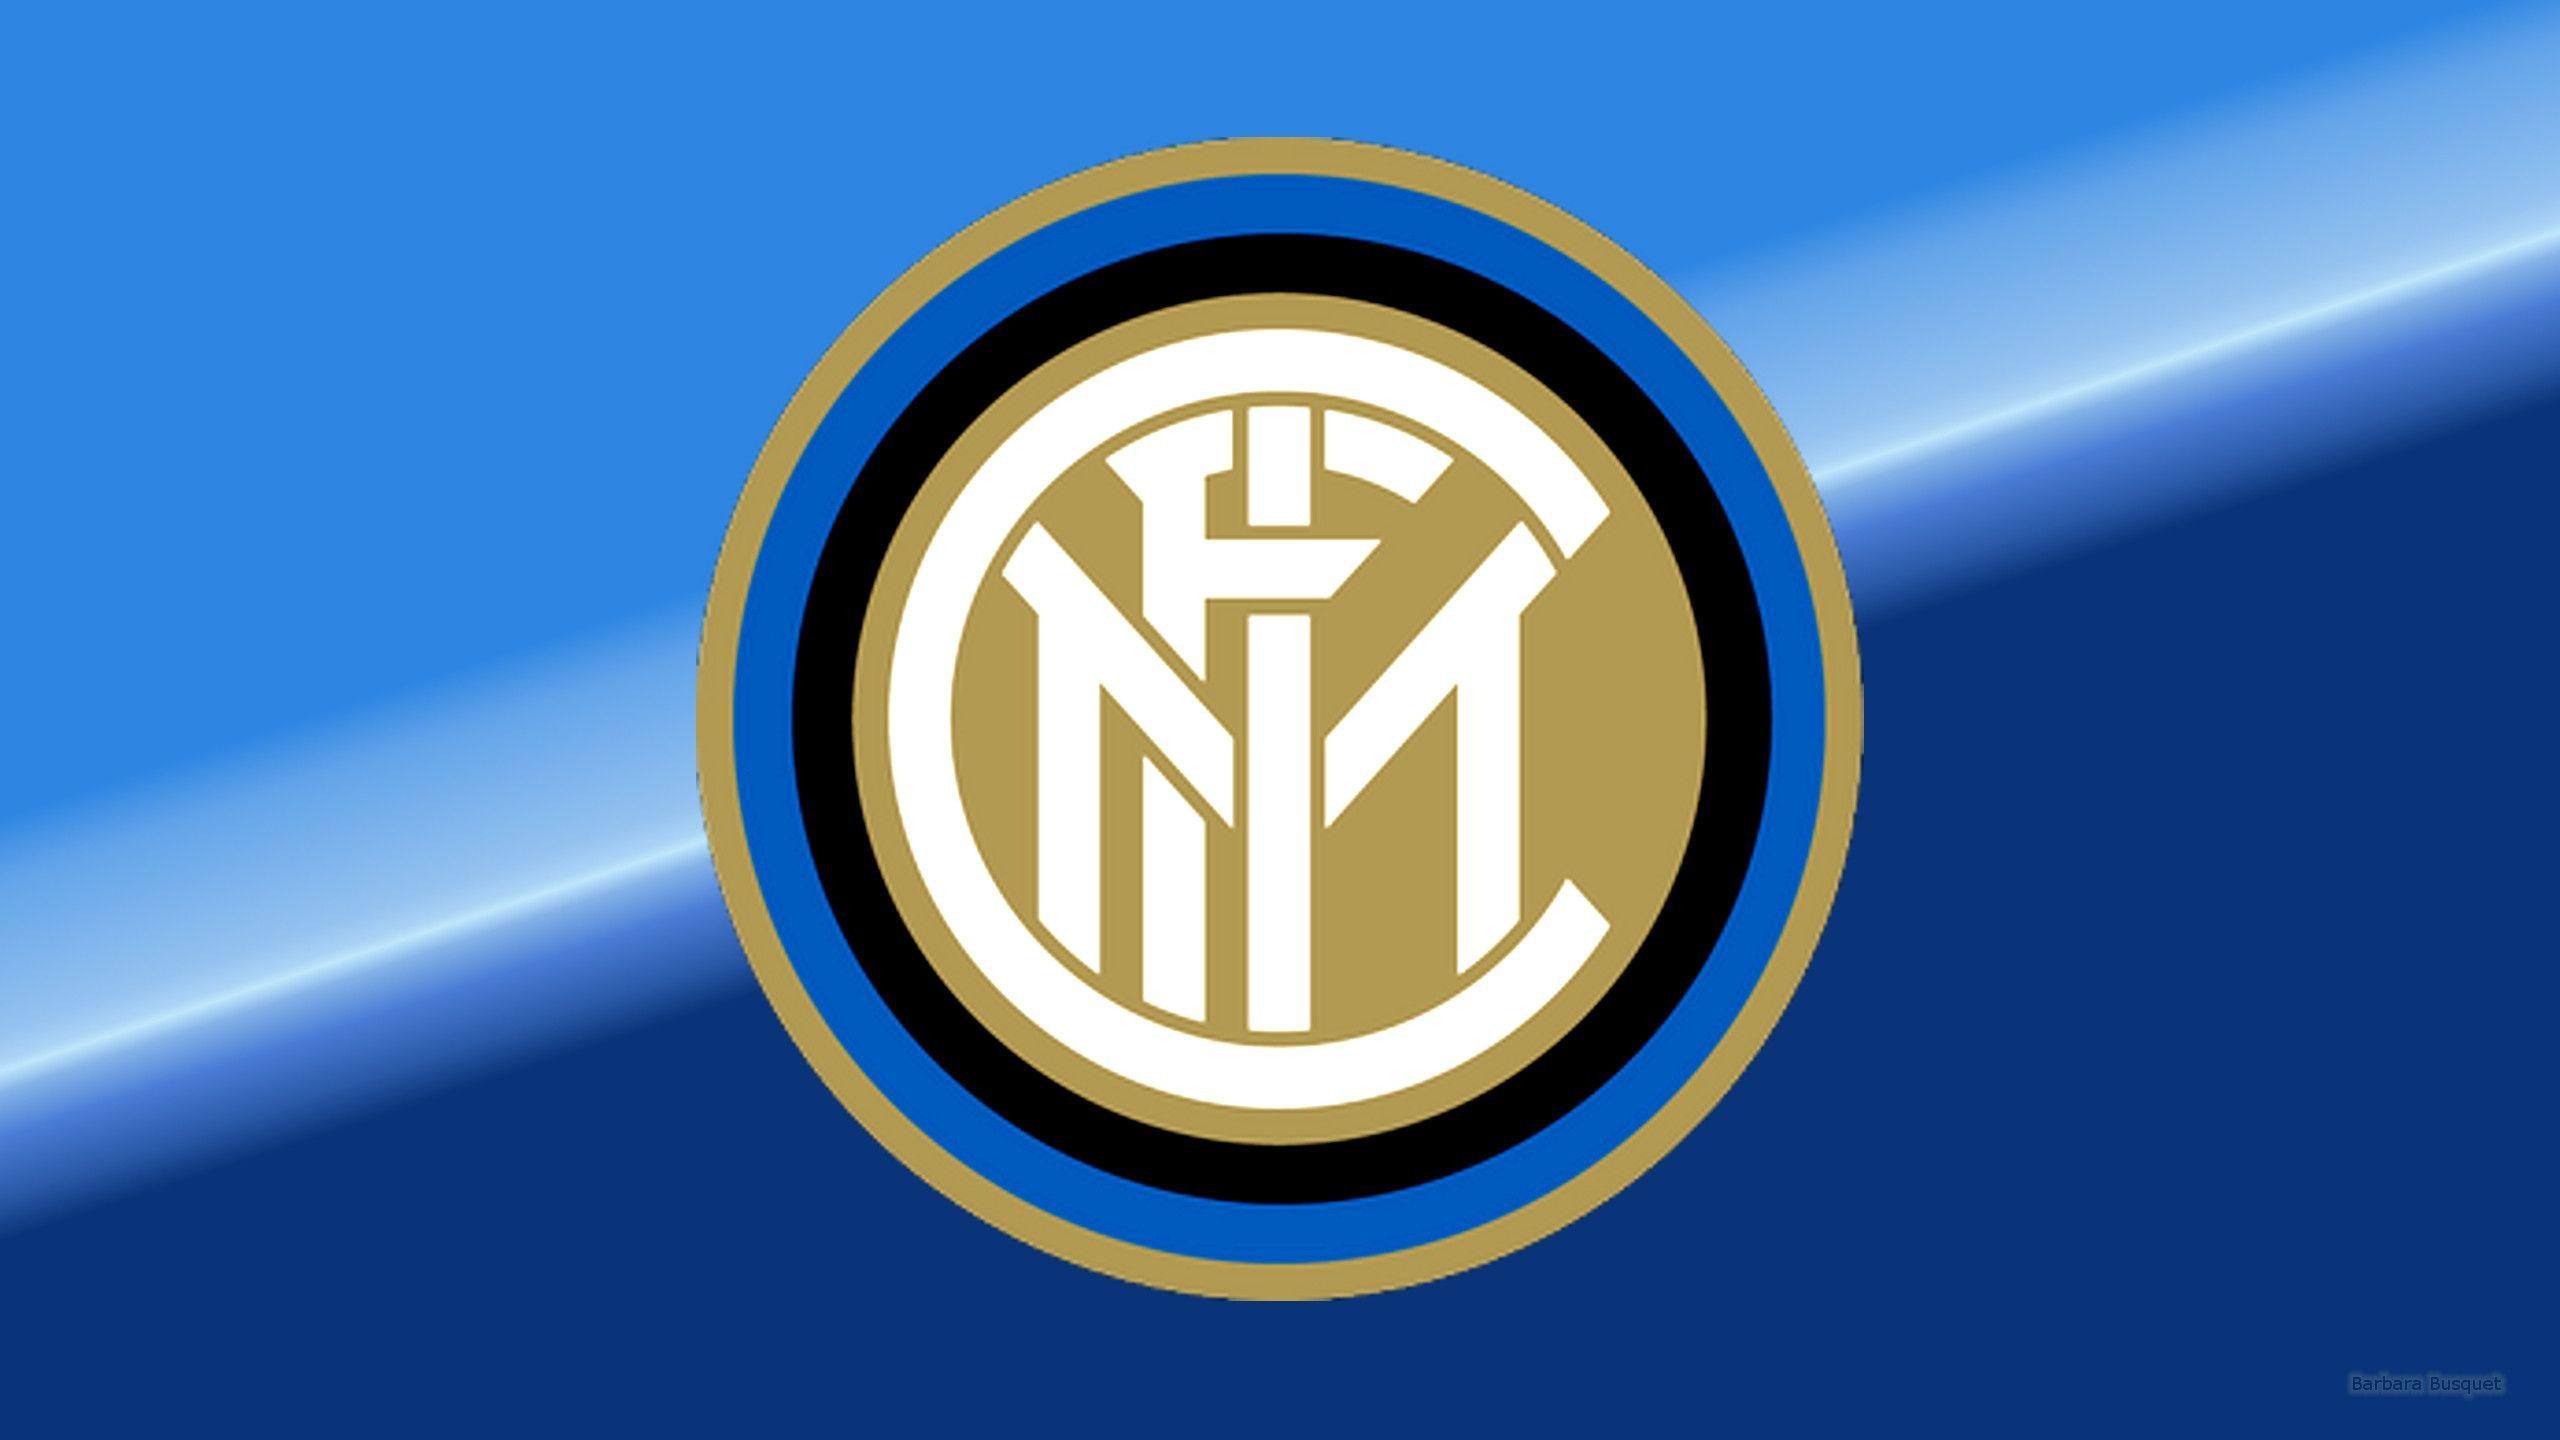 Inter Milan Wallpapers Wallpaper Cave